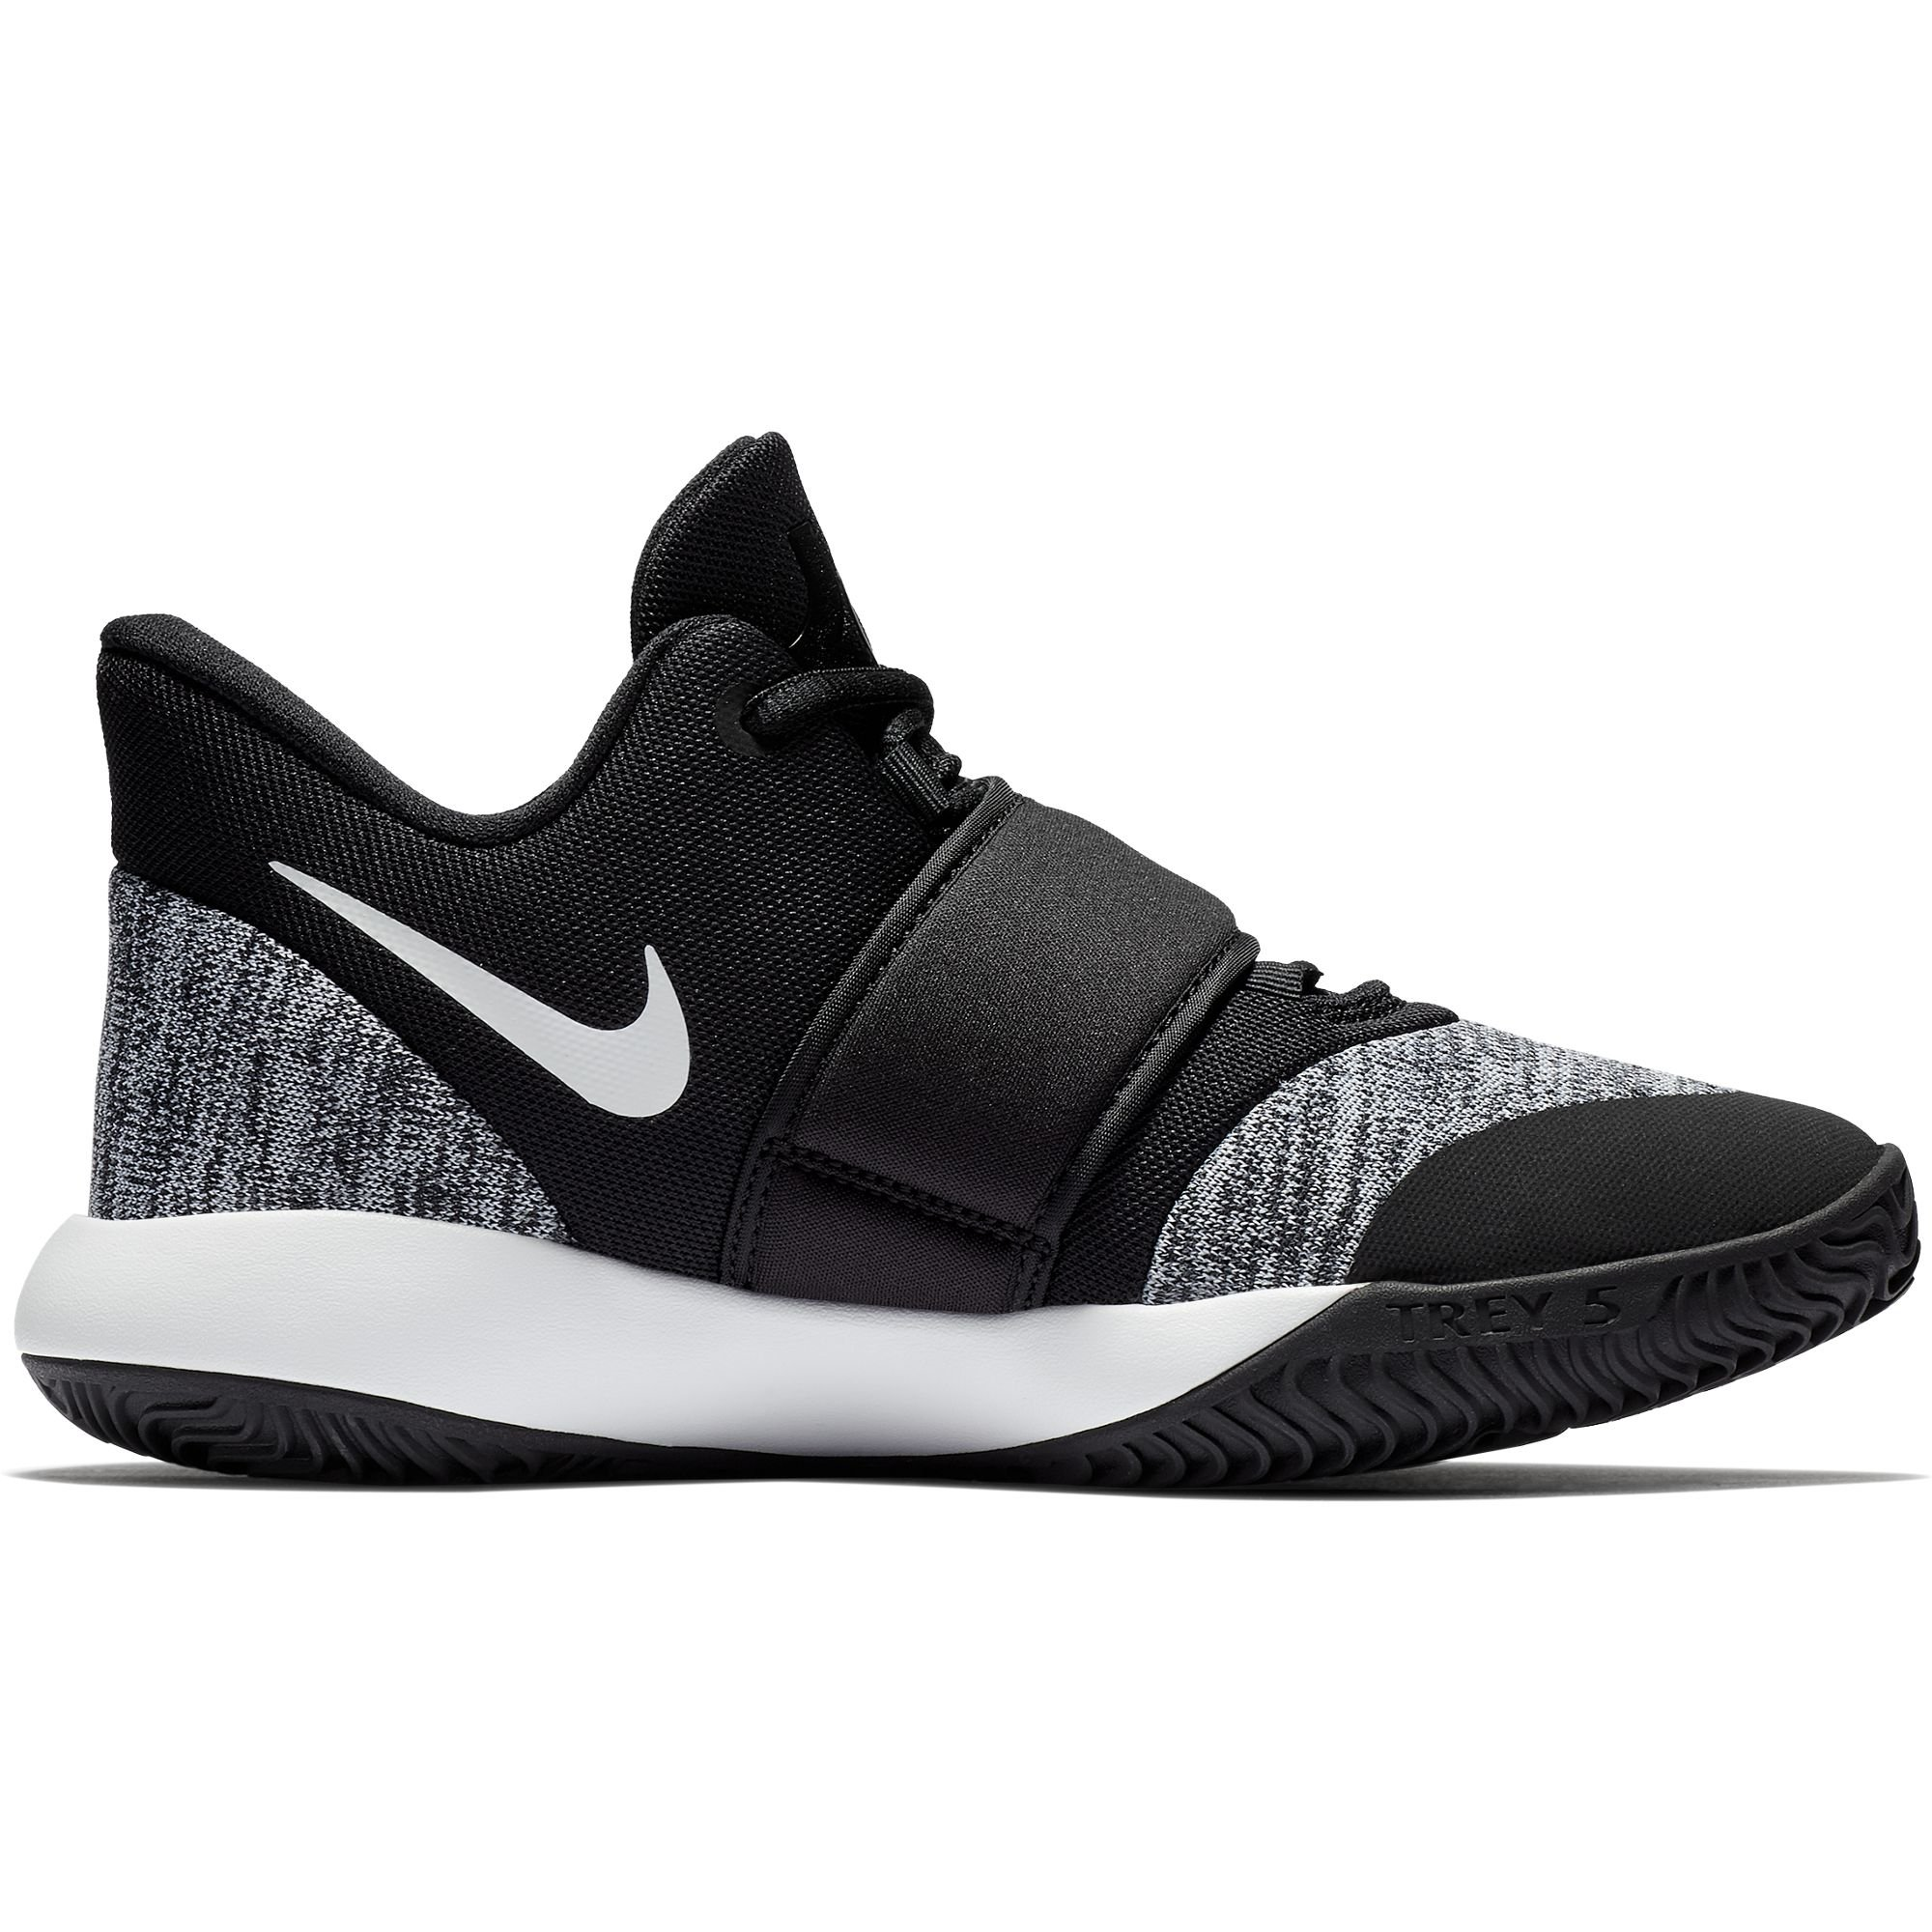 Nike Boy's KD Trey 5 VI Basketball Shoe Black/White Size 7 M US